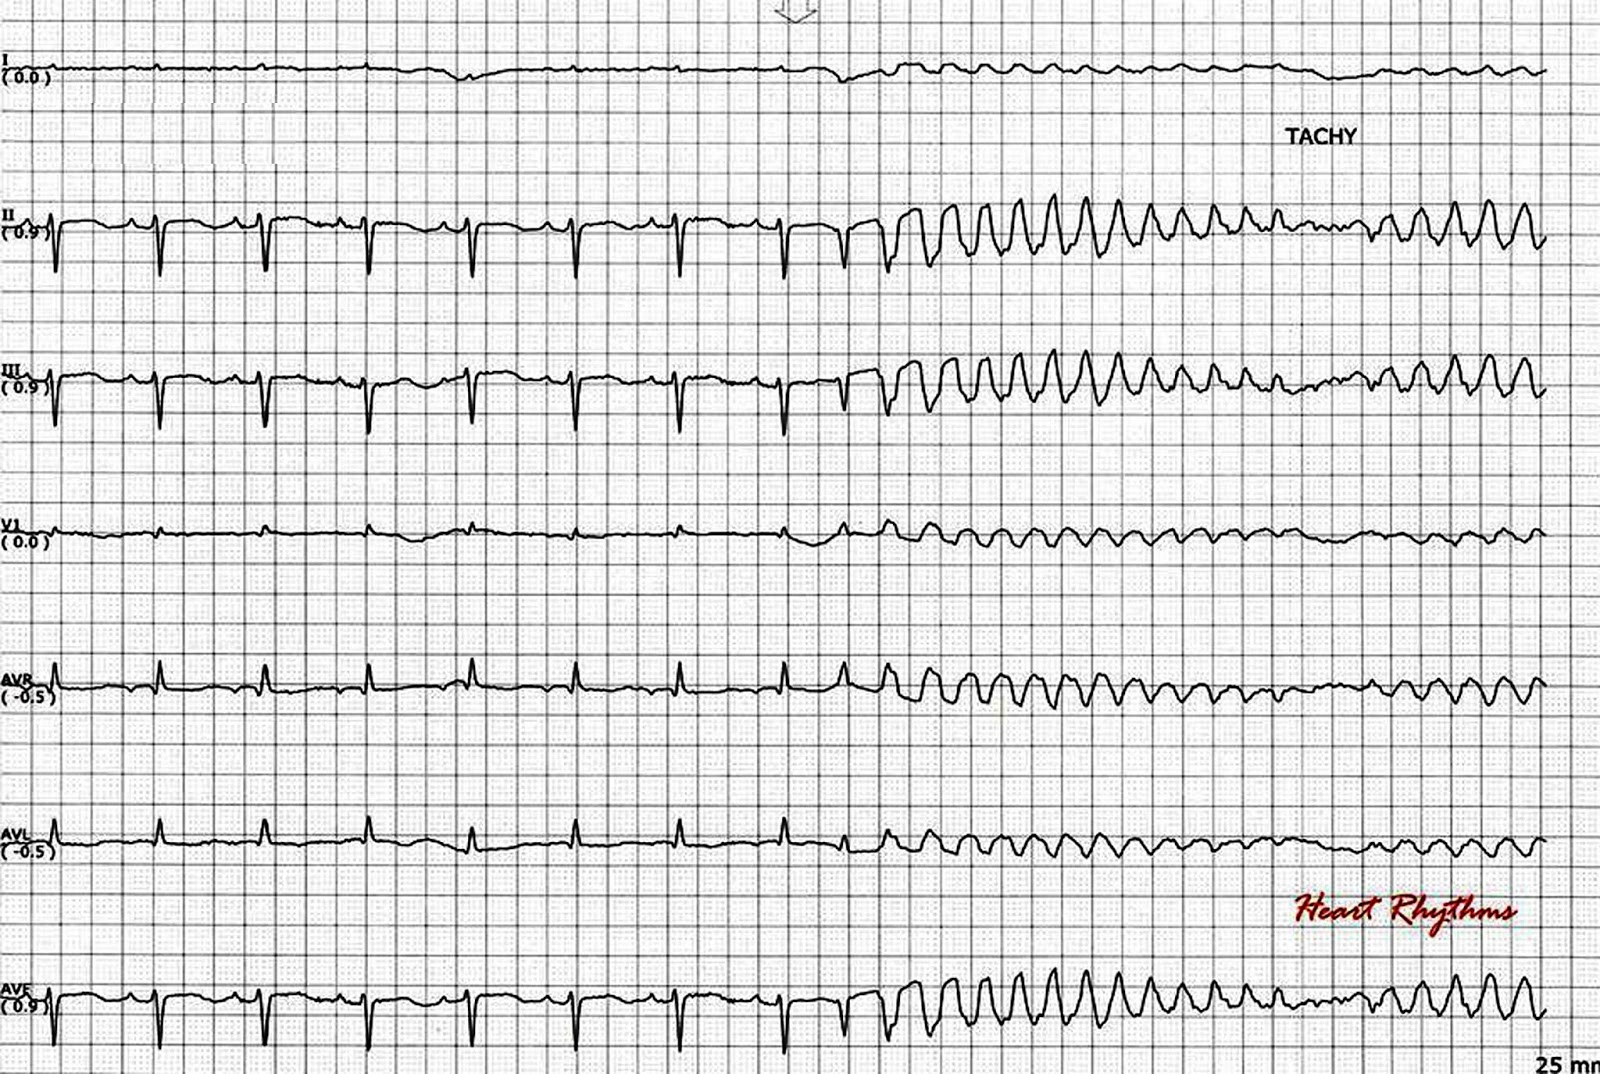 an introduction to the analysis of ventricular tachycardia Ventricular tachycardia  the analysis of the qrs morphology gives an idea of the  catheter ablation of idiopathic ventricular tachycardia arising from the .